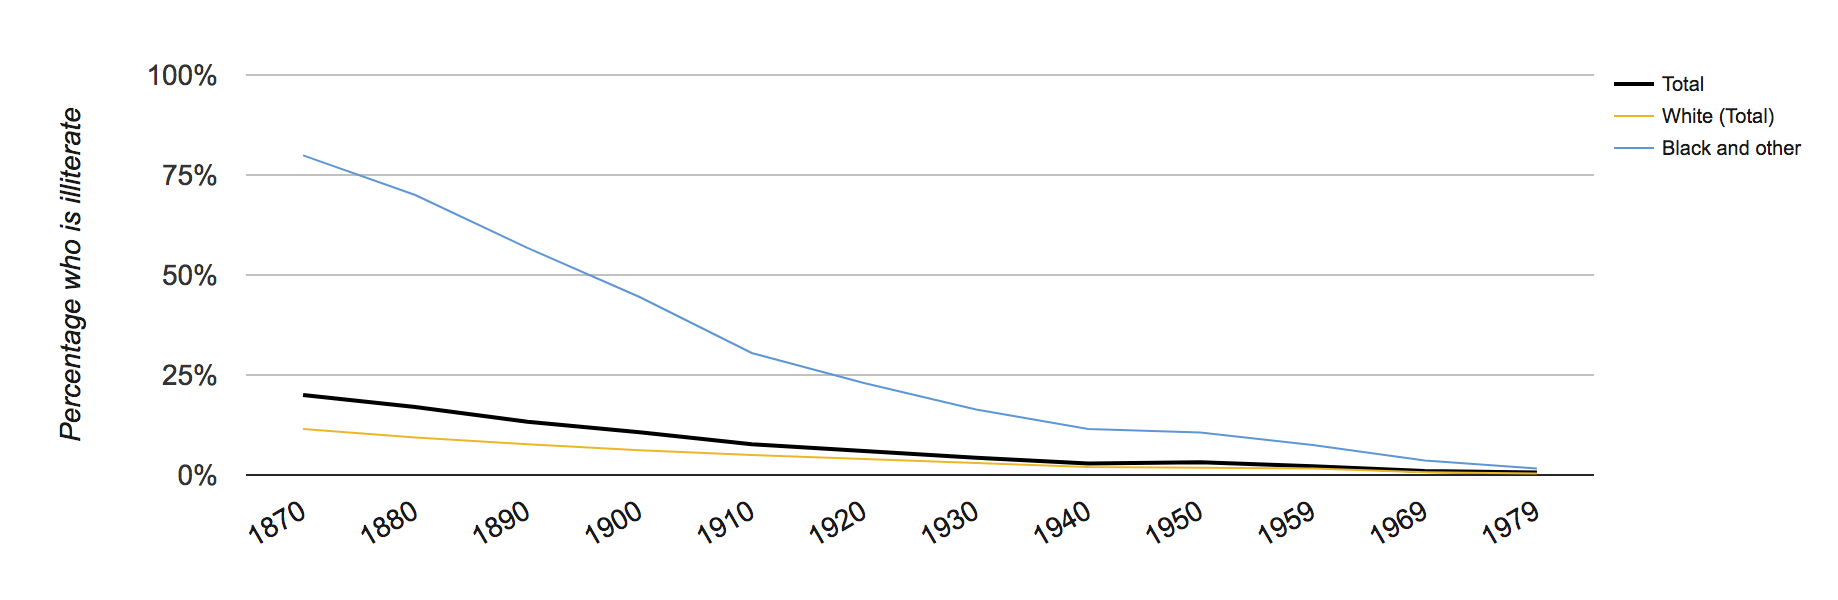 Graph of the percentage of people over 14 who are illiterate, by race